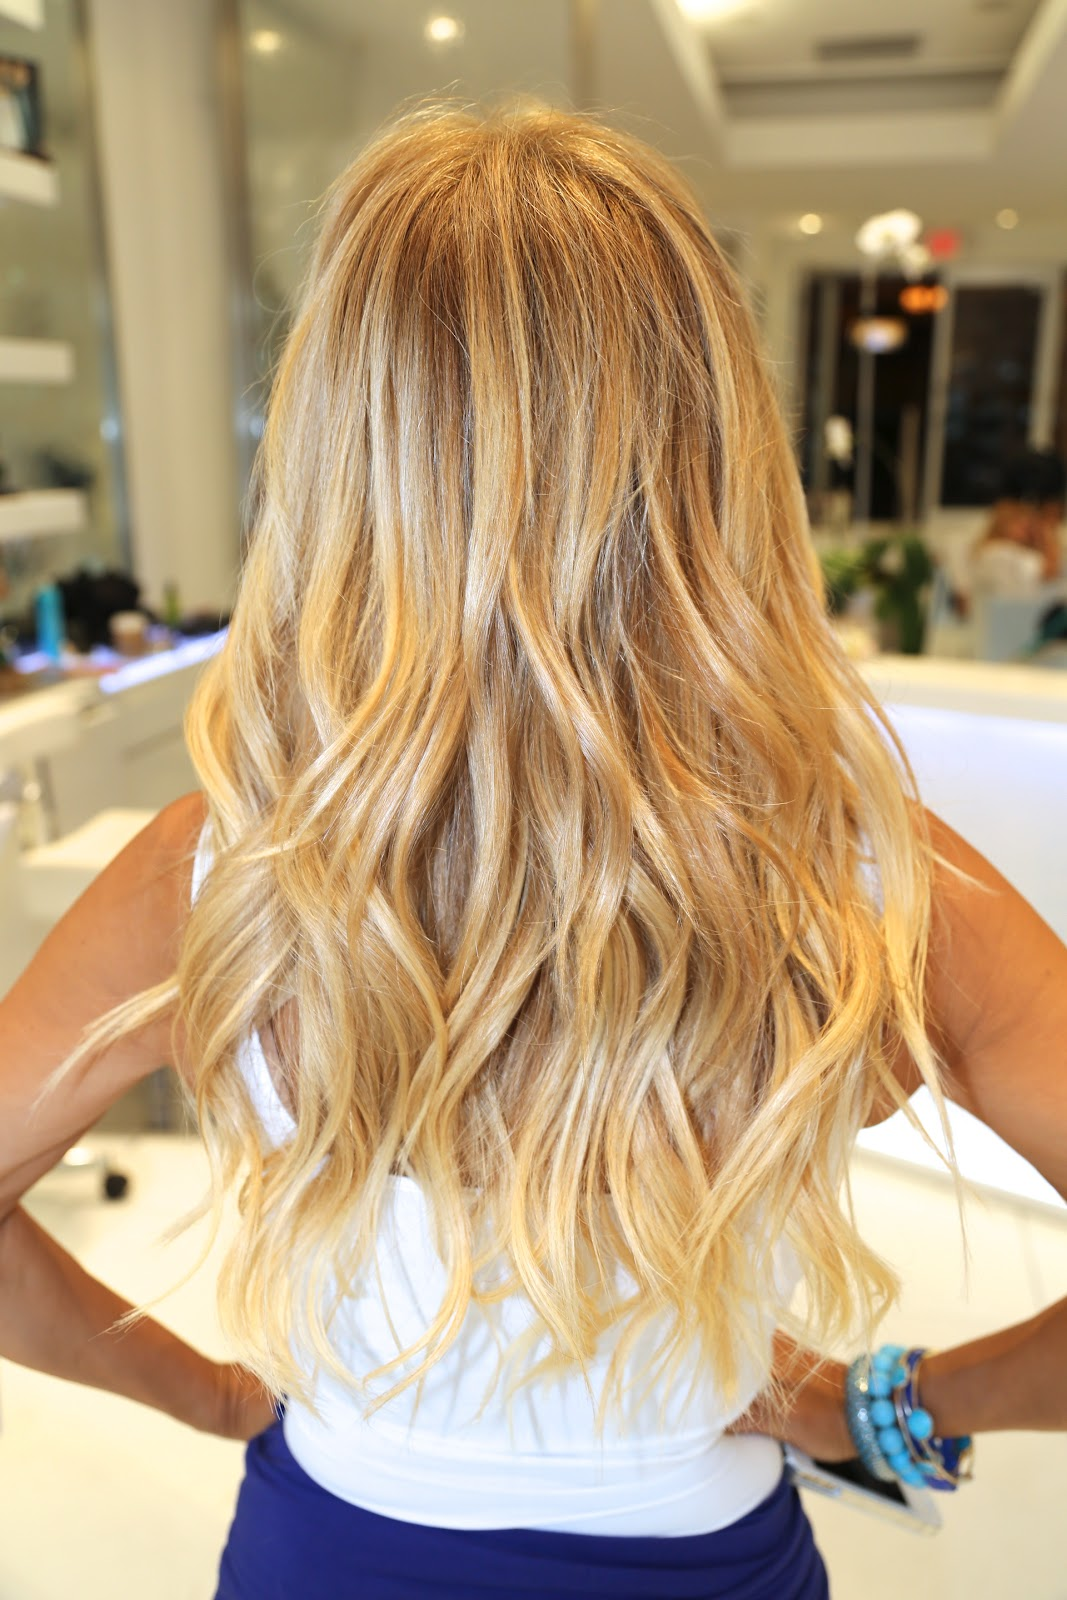 Miami Irene Best Natural Tape Extensions Anh Co Tran